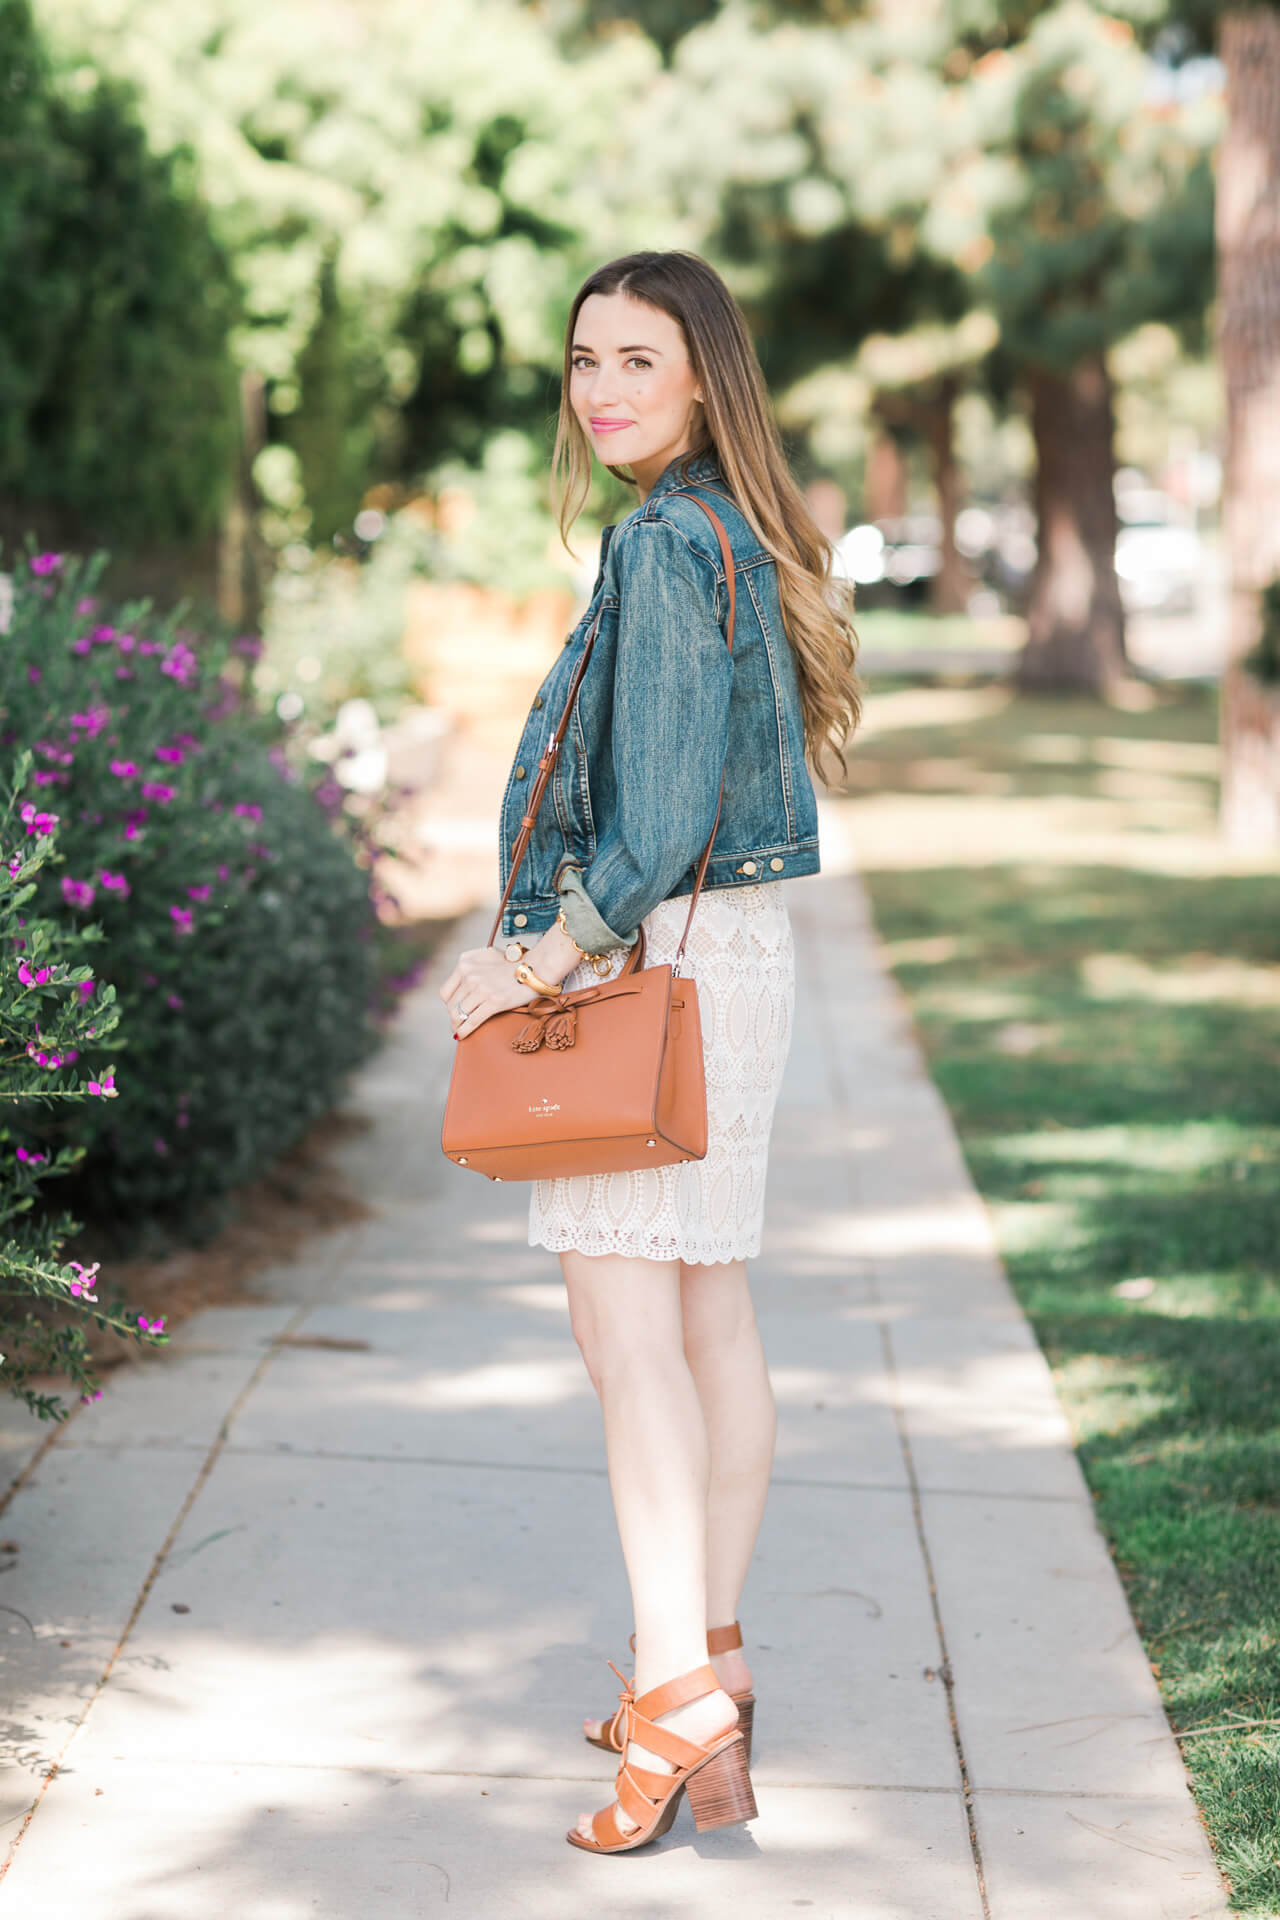 styling a denim jacket with a lace dress for spring